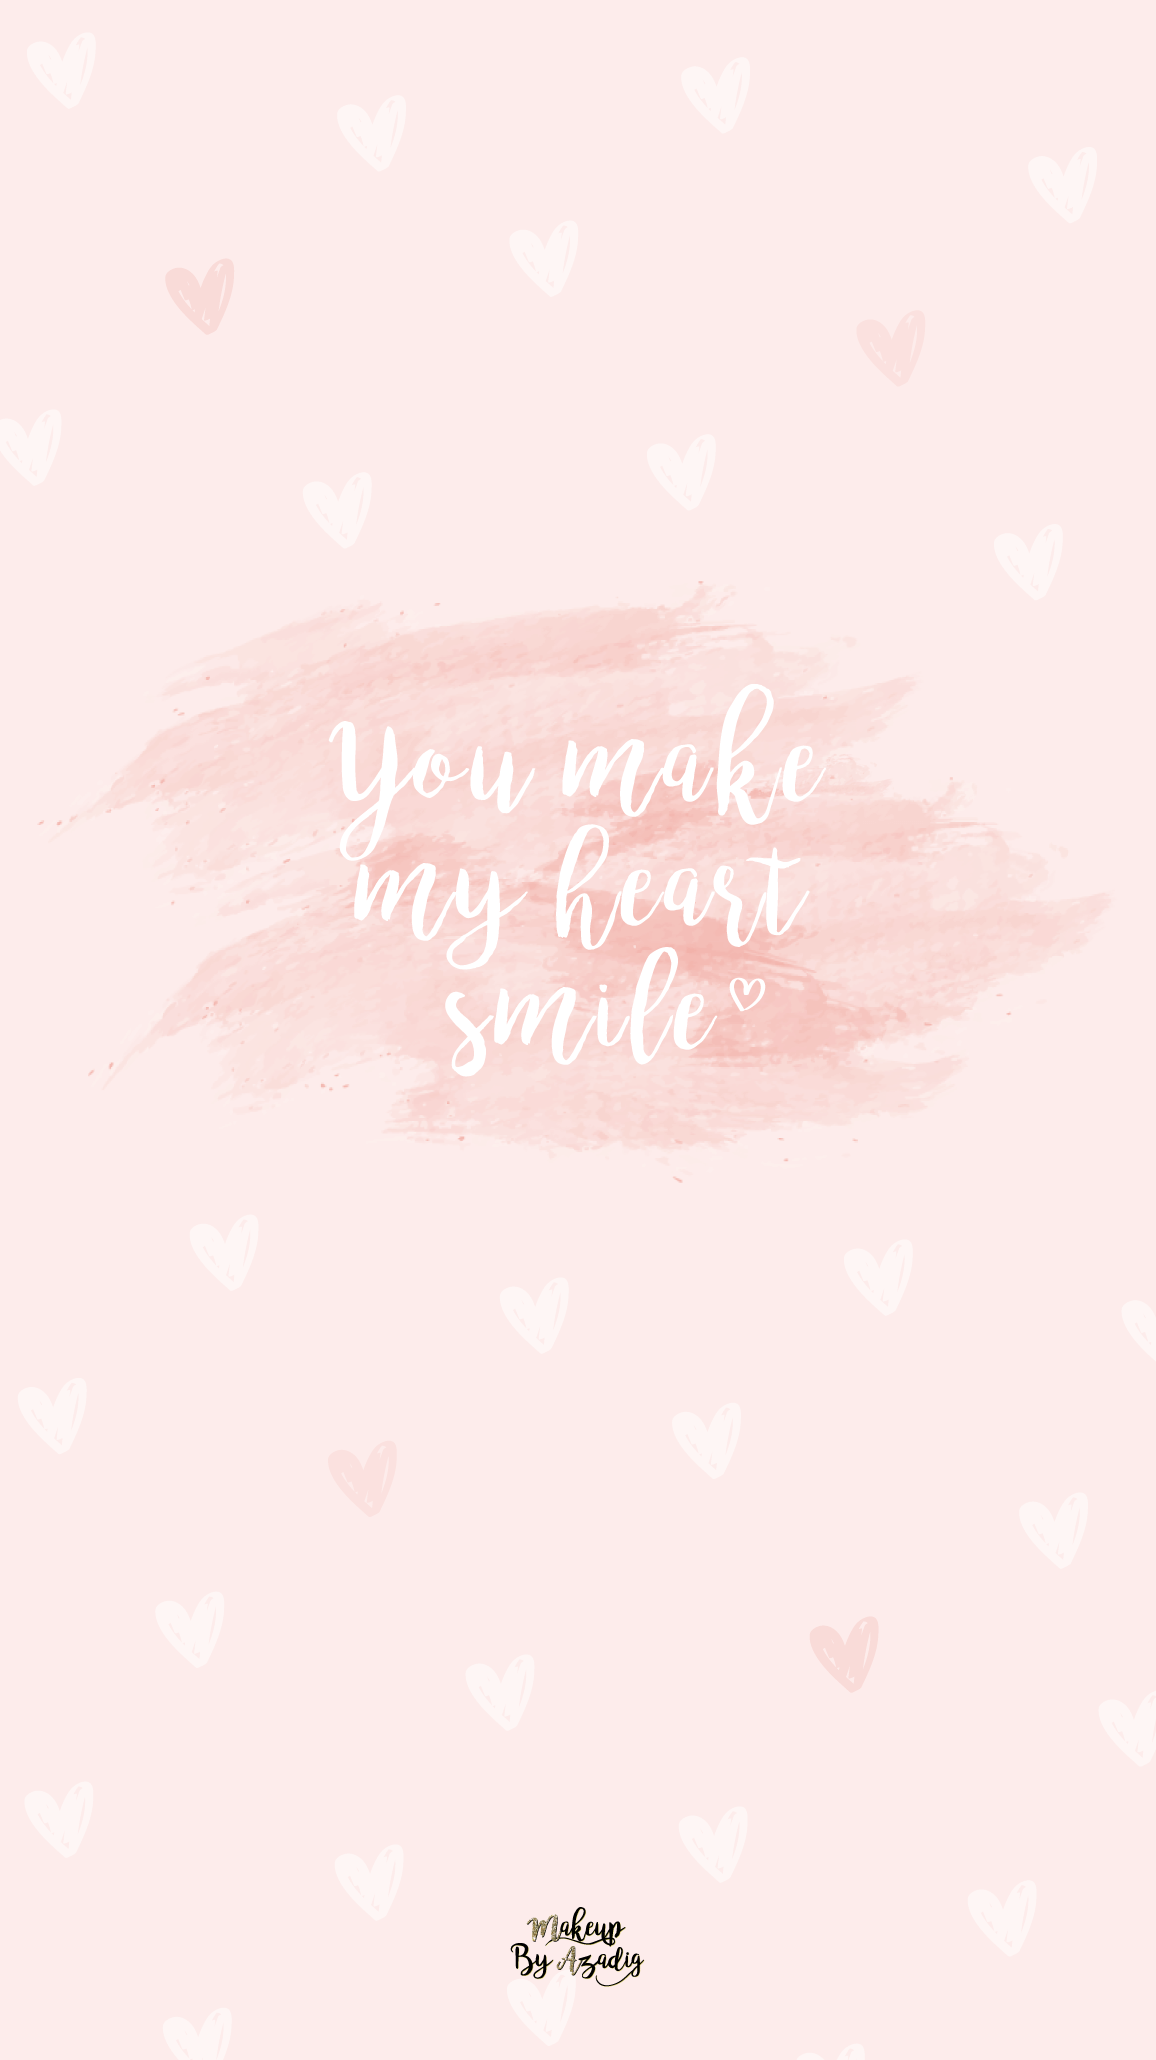 fond-decran-coeur-love-amour-citation-you-make-my-heart-smile-rose-girly-samsung-iphone-6-7-8-makeupbyazadig-tendance